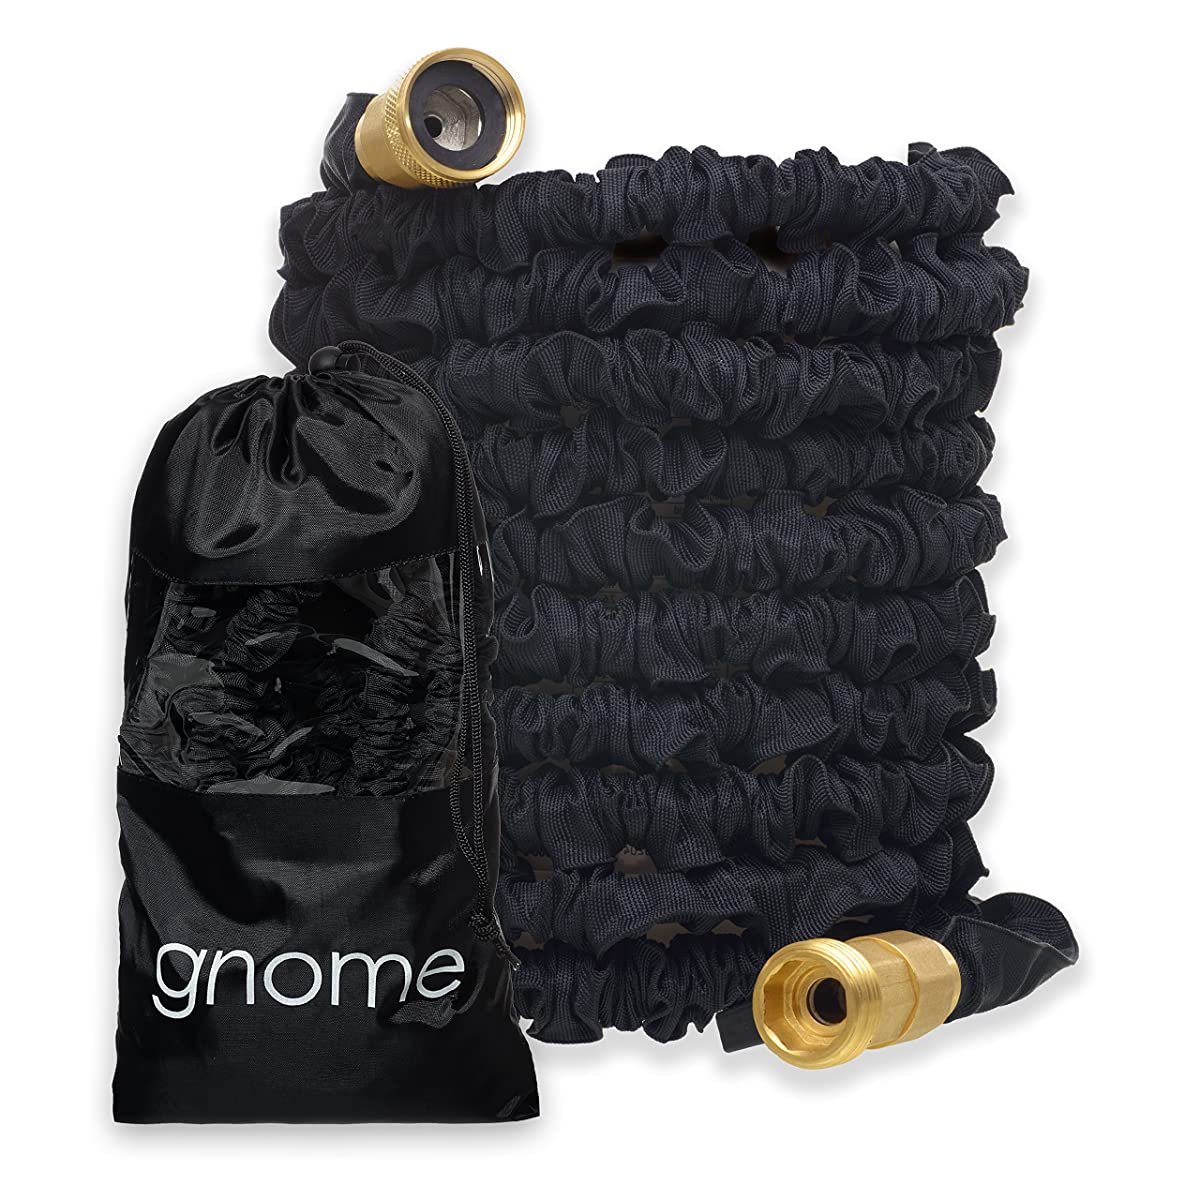 Gnome Garden Hose | Flexible Expandable Non-Kink Water Hose | Best In Class Reinforced USA Sized Solid Brass Connectors | On/Off Valve, Lightweight, Pocket Bag, Great Gift for Men or Women